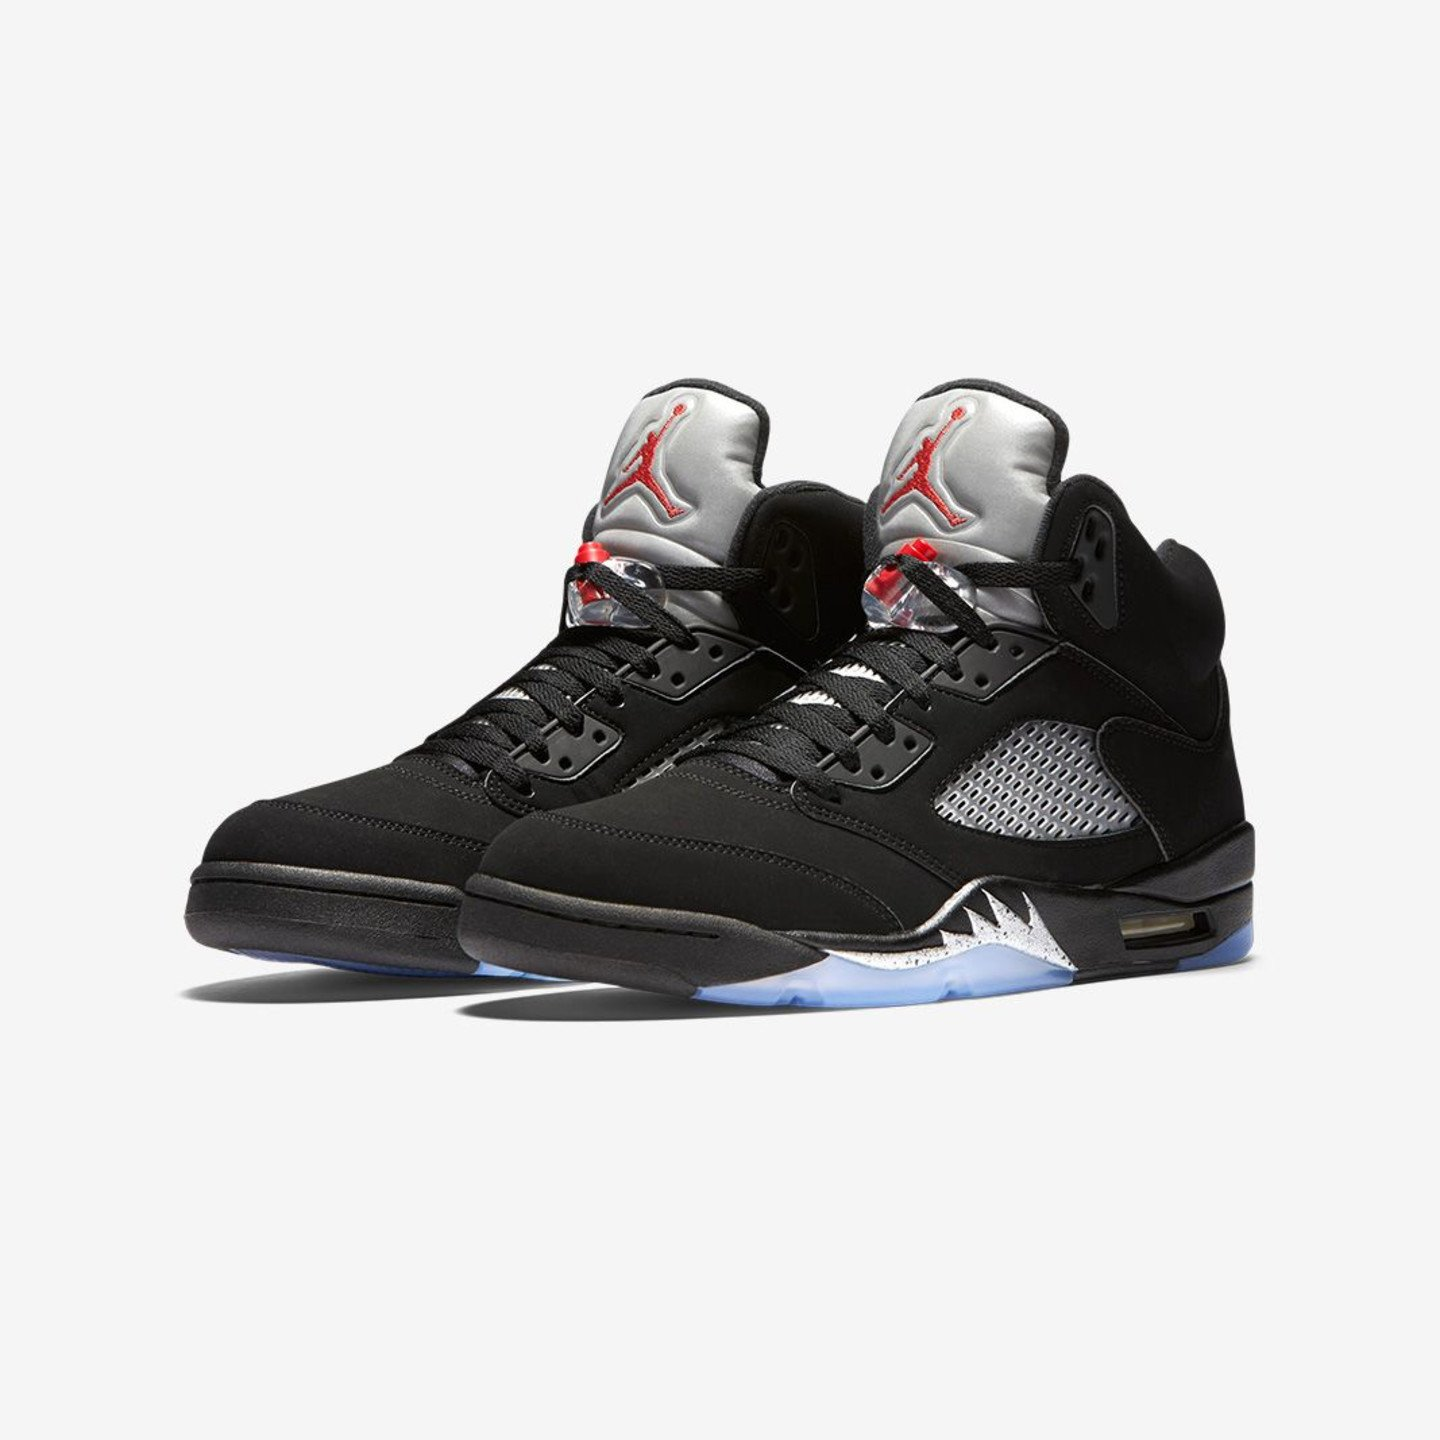 Jordan Air Jordan 5 Retro OG 'Metallic Silver' Black / Metallic Silver / Fire Red 845035-003-42